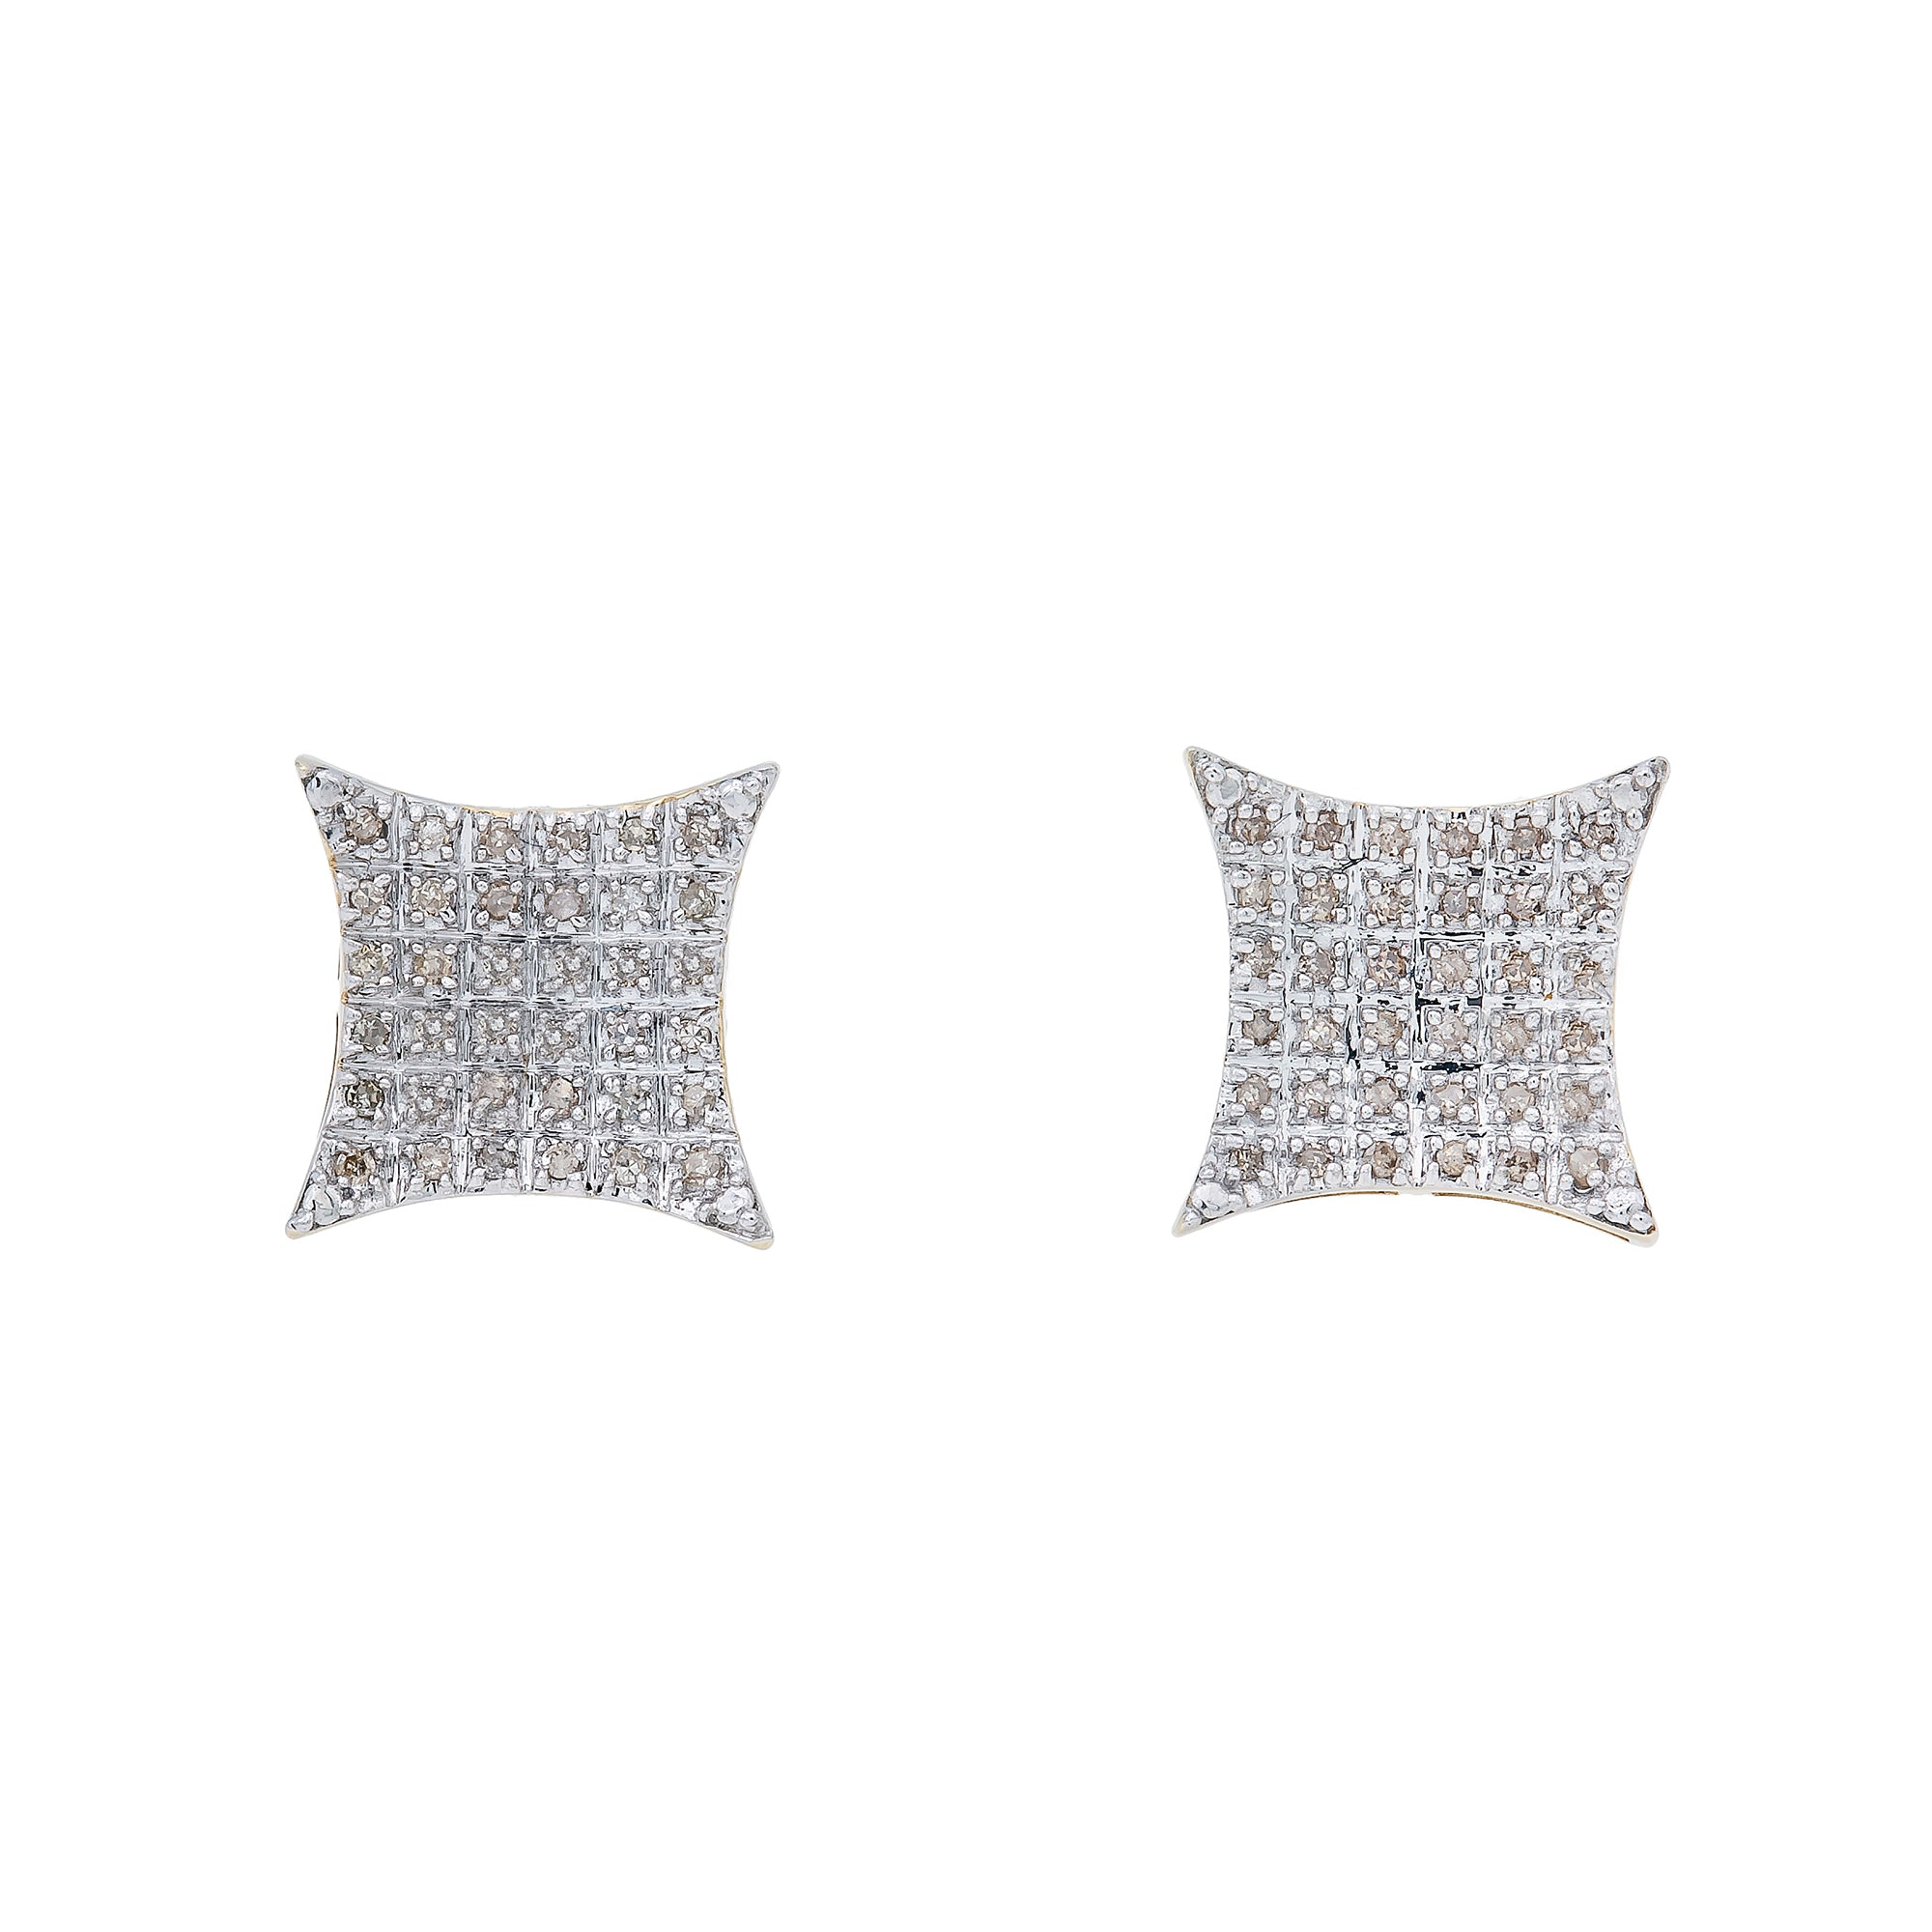 10K Yellow Gold Unisex Earrings with 0.30 CT Diamond